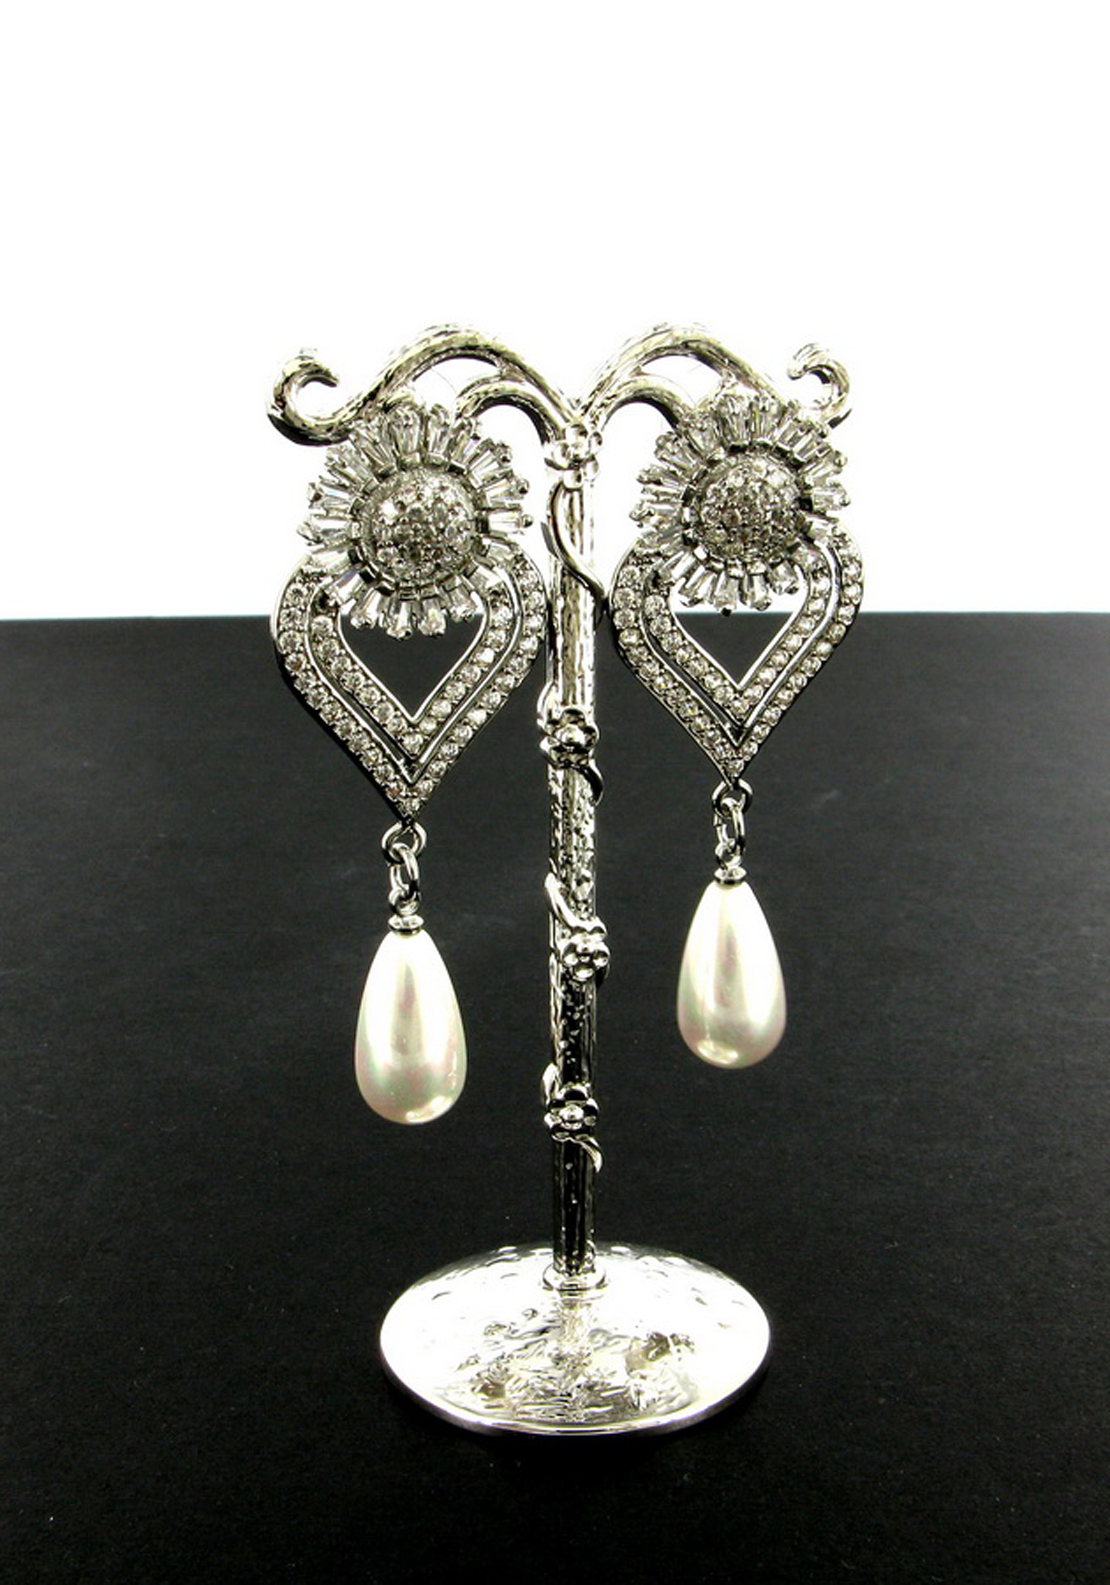 Nour London Crystal Earrings with Faux Pearl Drop Earrings, Silver